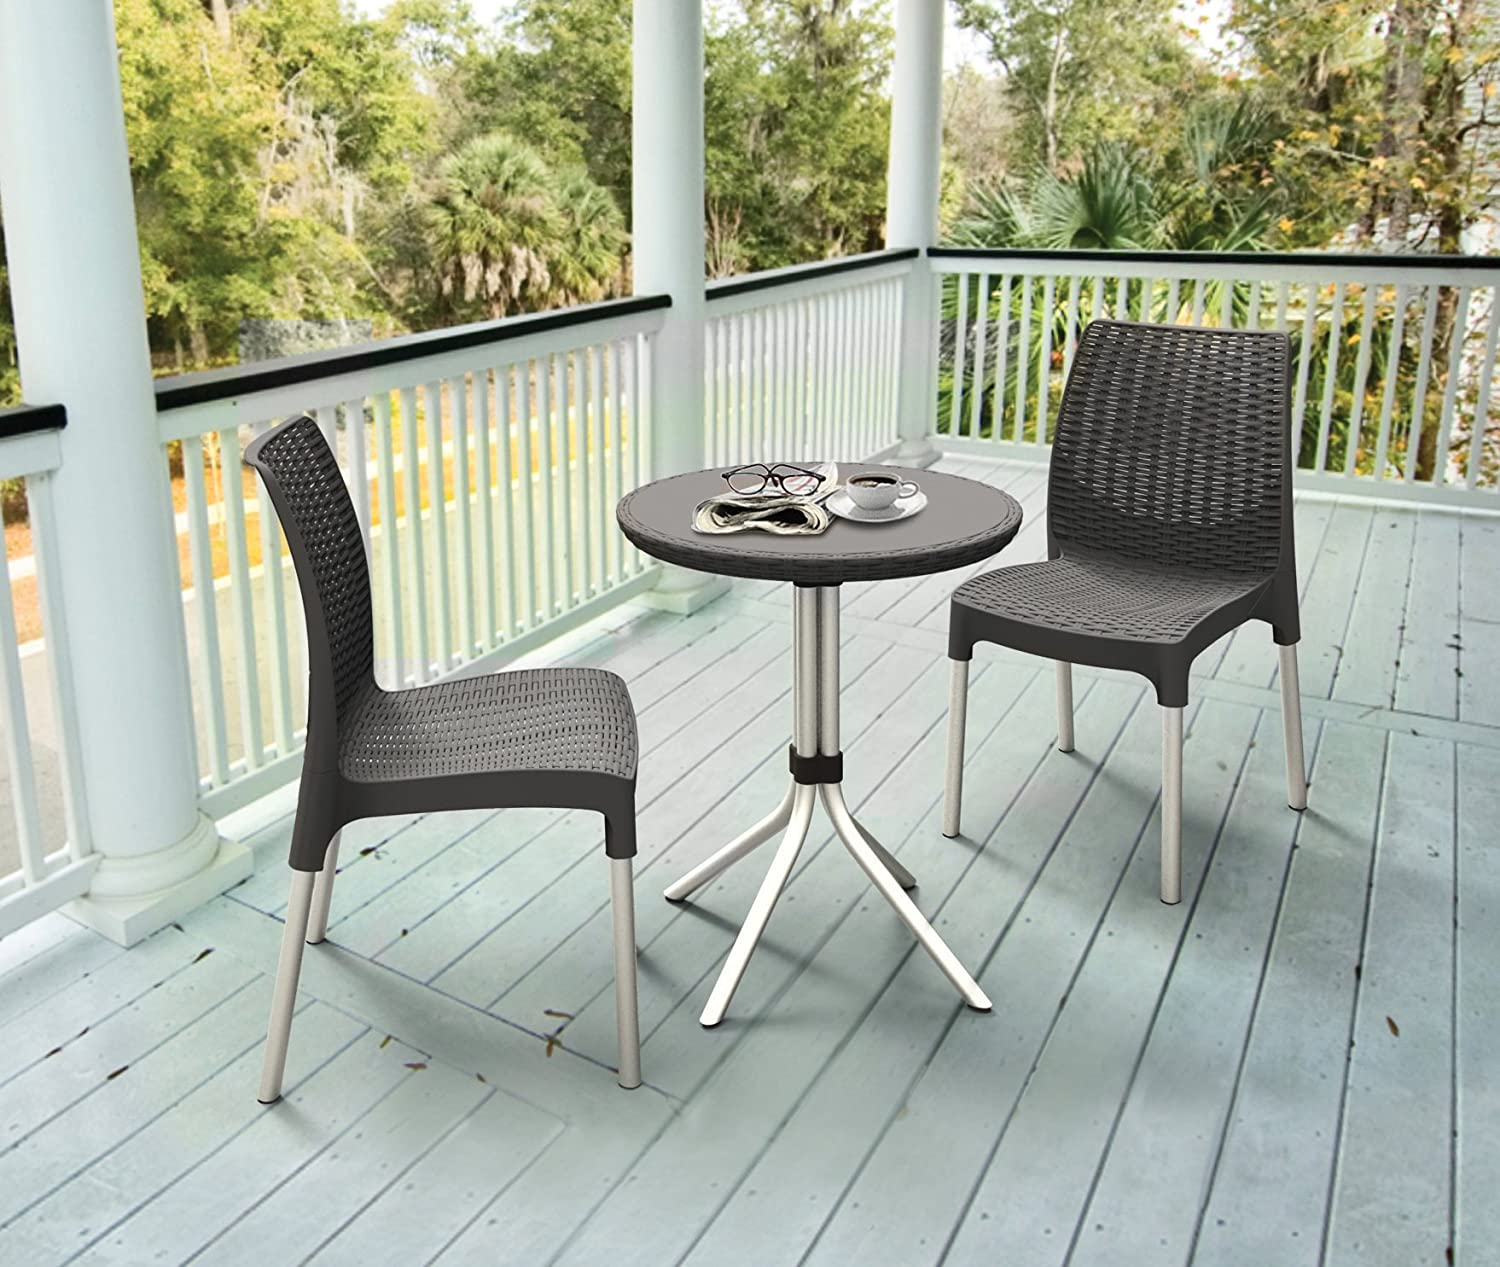 amazoncom keter chelsea 3 piece resin outdoor patio furniture dining bistro set with patio table and chairs charcoal garden outdoor